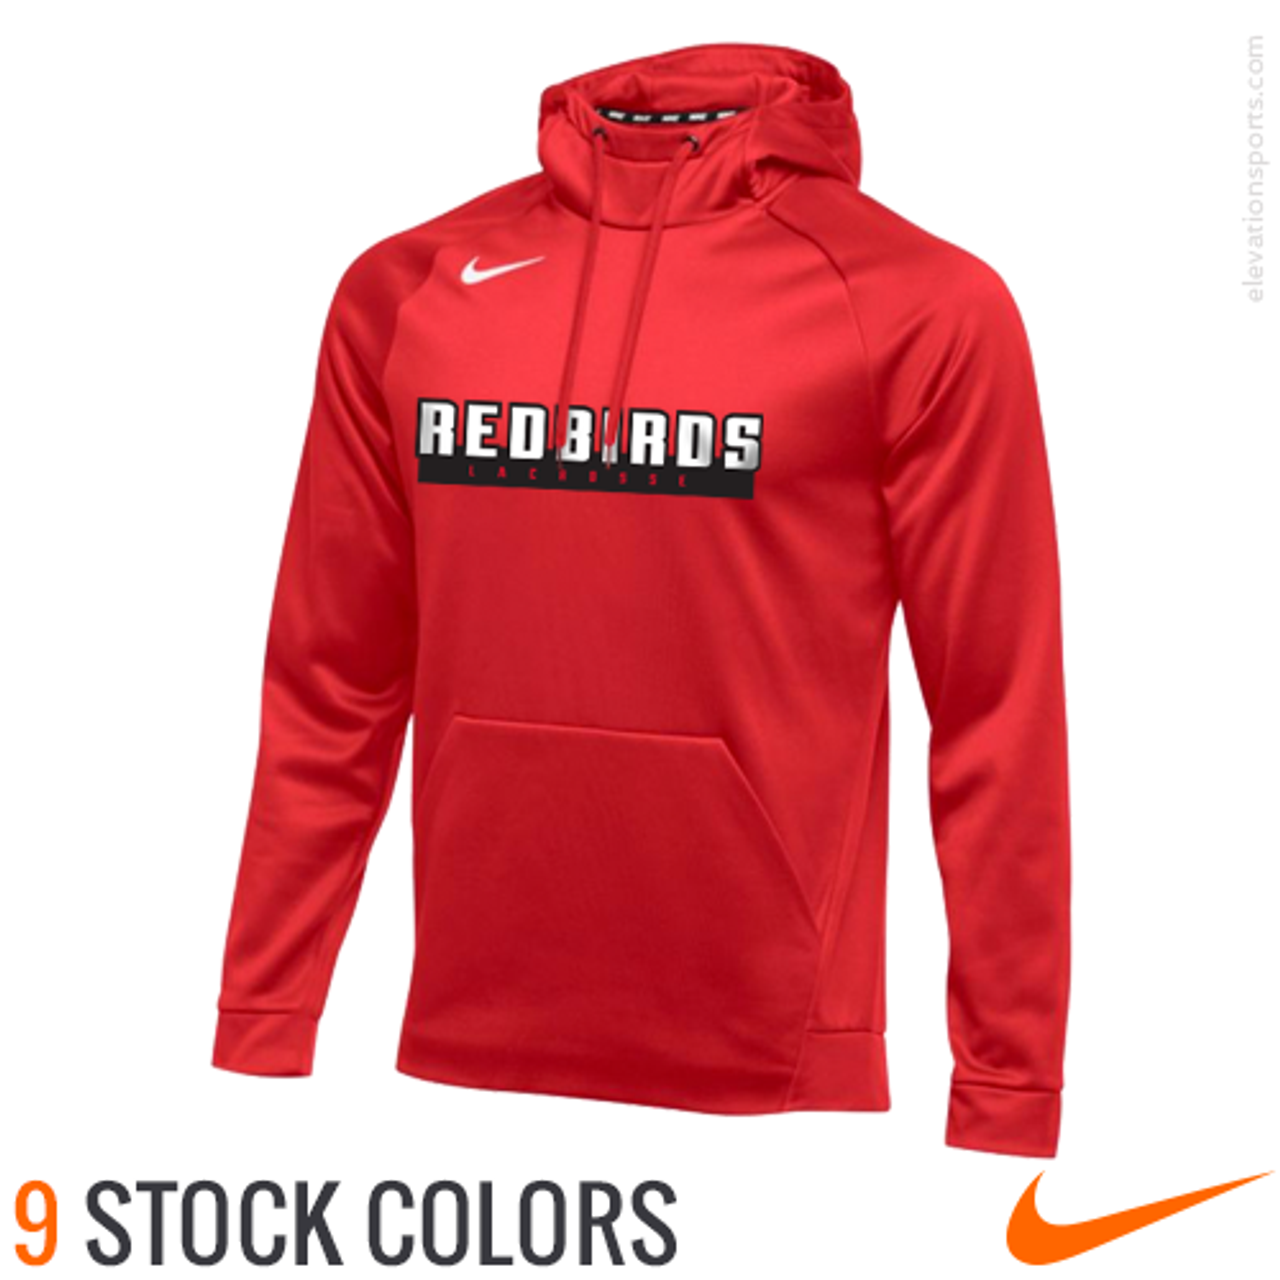 Sports Custom Sports Therma HoodiesElevation Nike Nike Custom Therma HoodiesElevation HoodiesElevation Nike Therma Custom kZiuTlwPOX